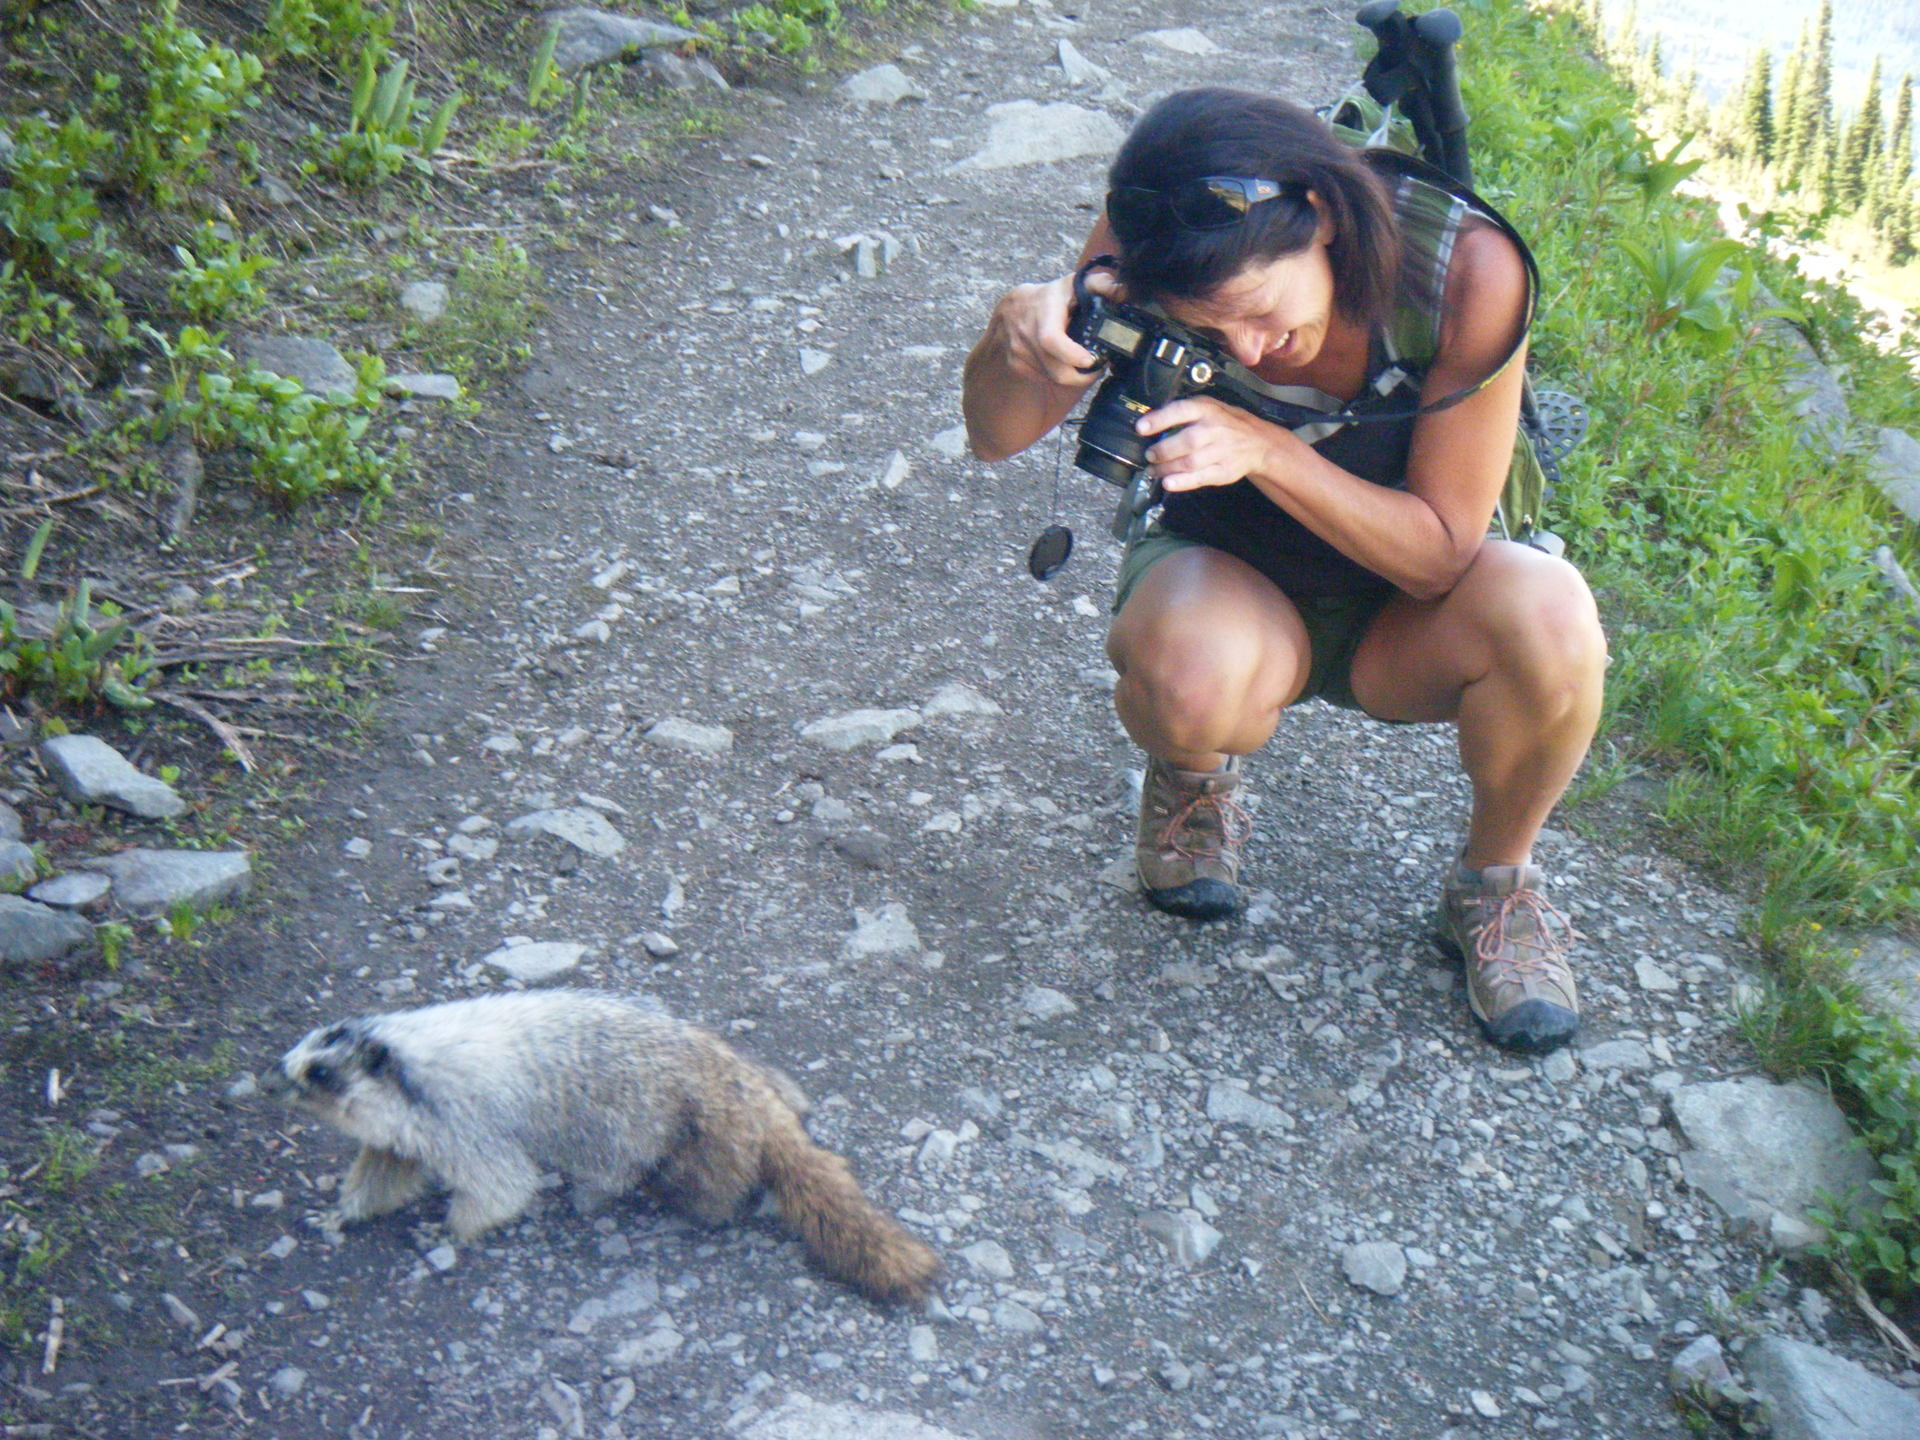 Marmot out for a stroll